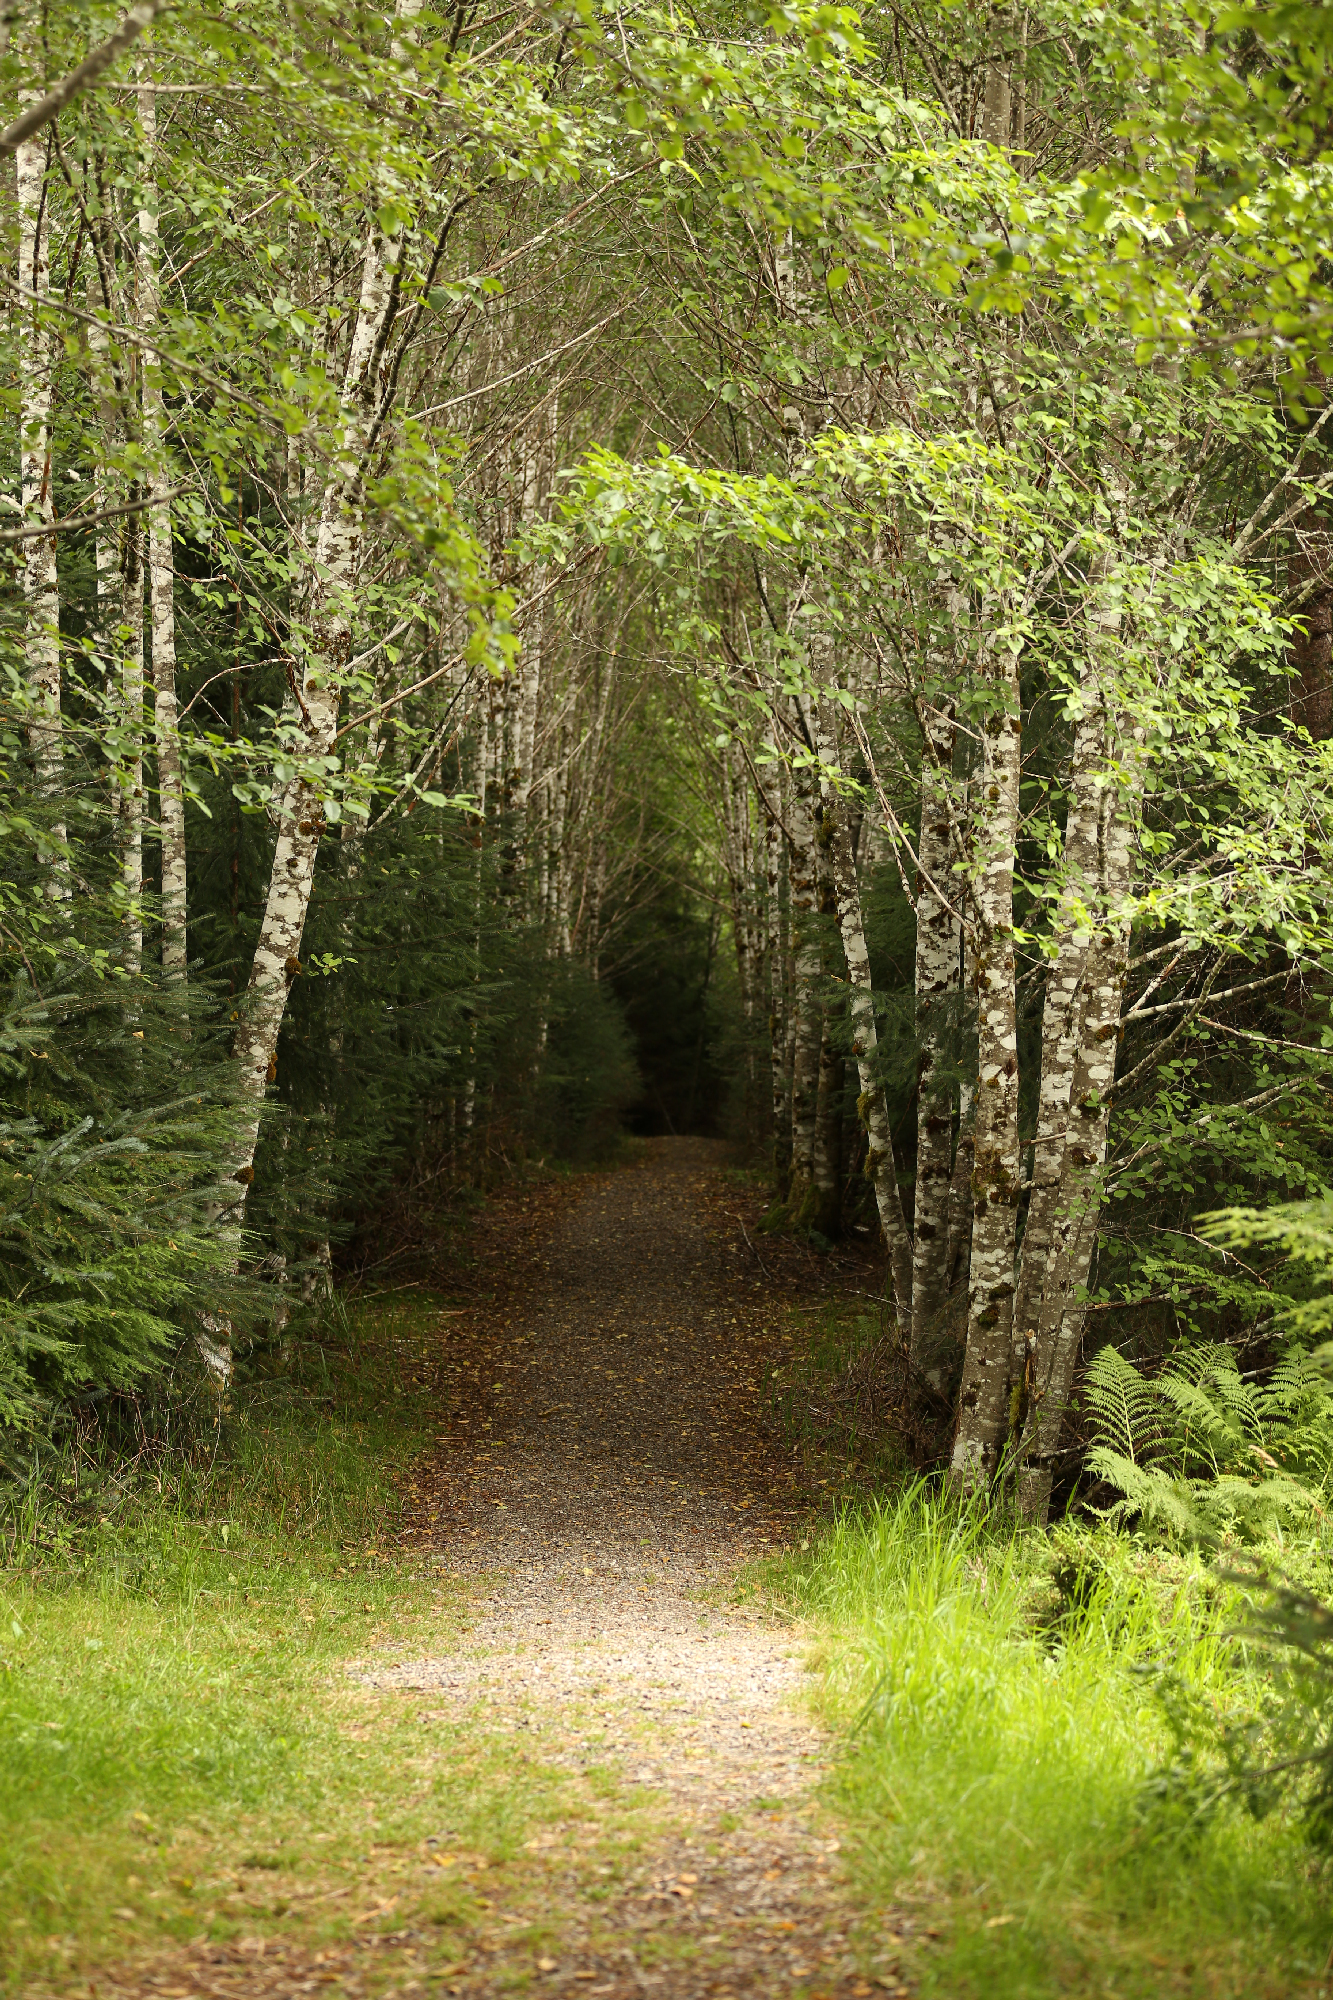 The tree-lined path to the bear viewing platform.